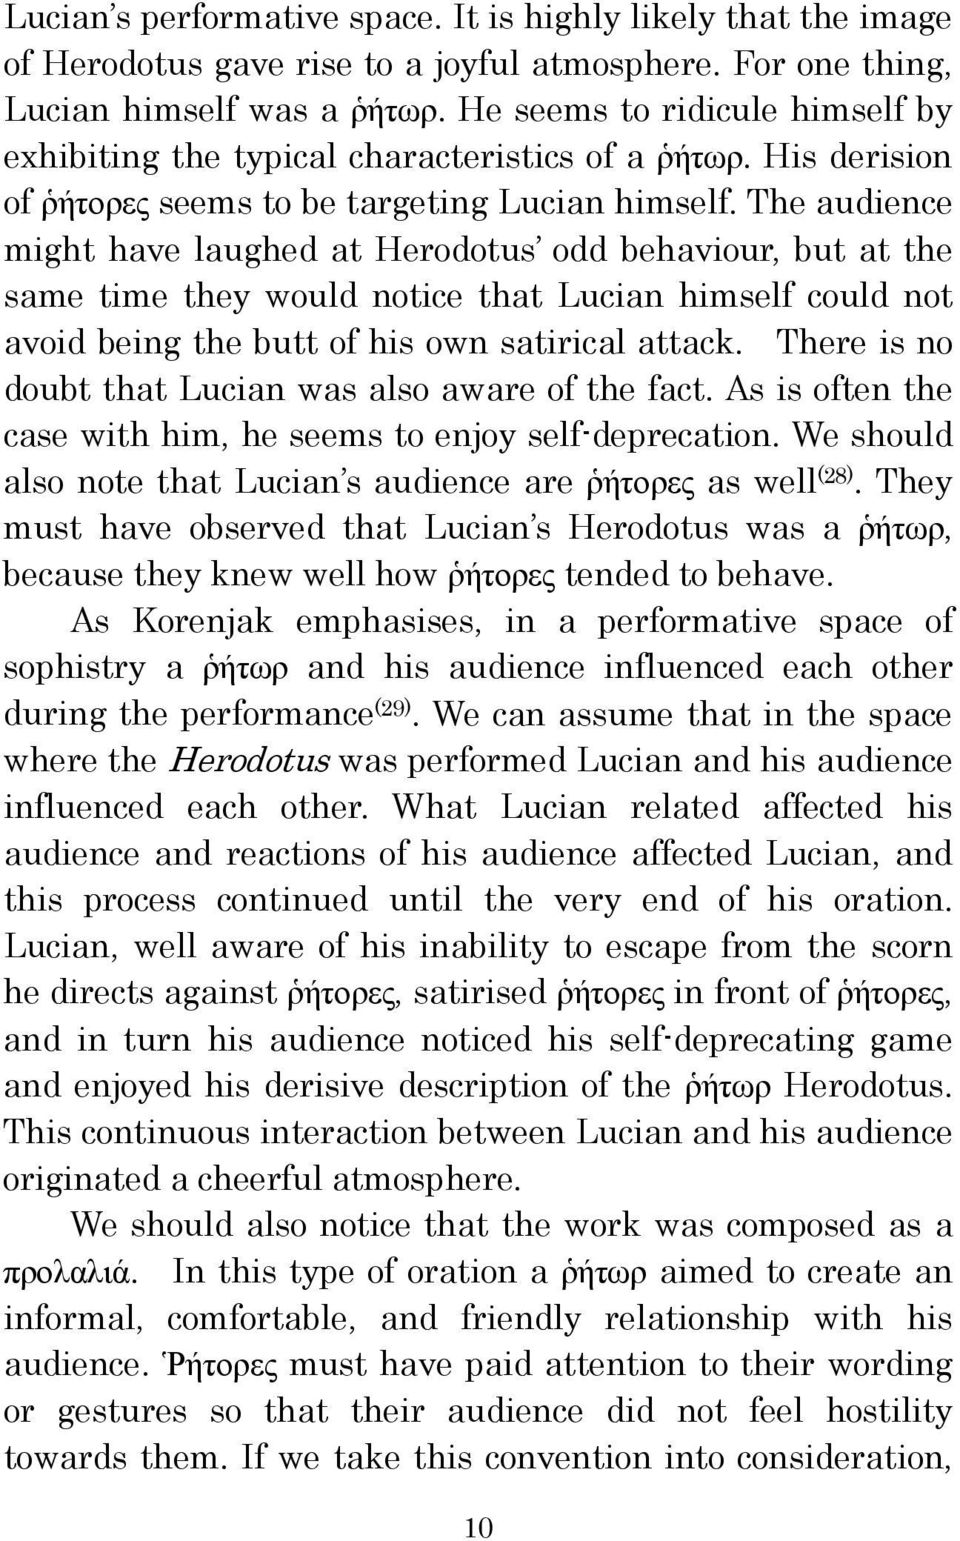 The audience might have laughed at Herodotus odd behaviour, but at the same time they would notice that Lucian himself could not avoid being the butt of his own satirical attack.